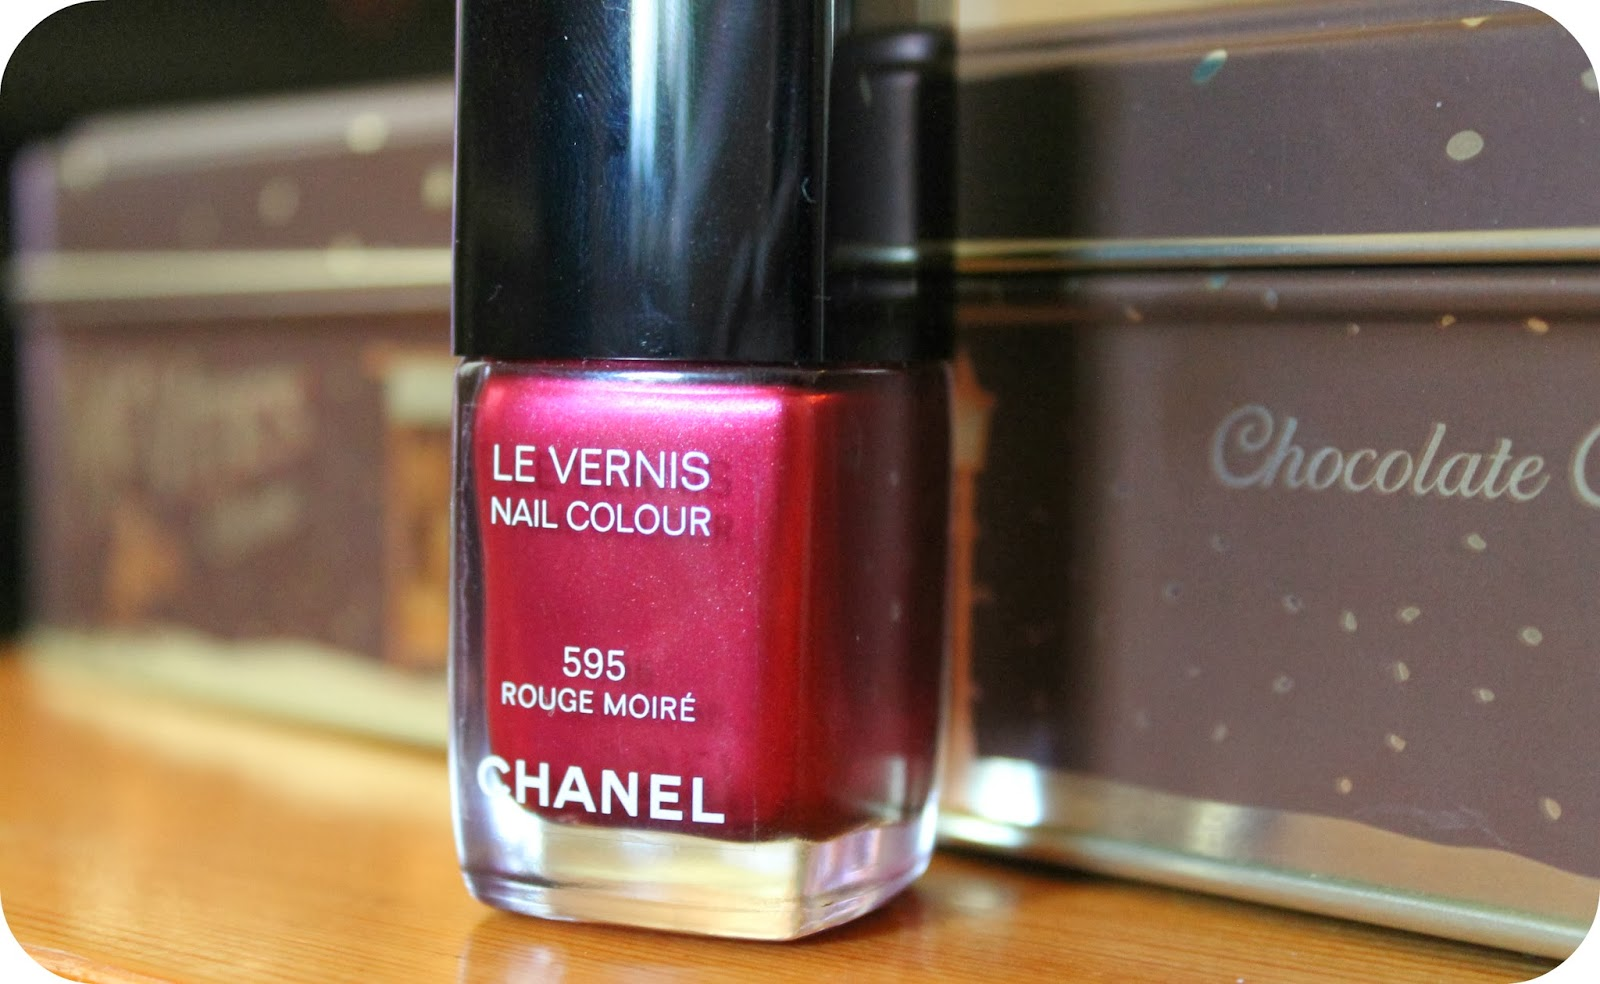 Chanel Rouge Moire